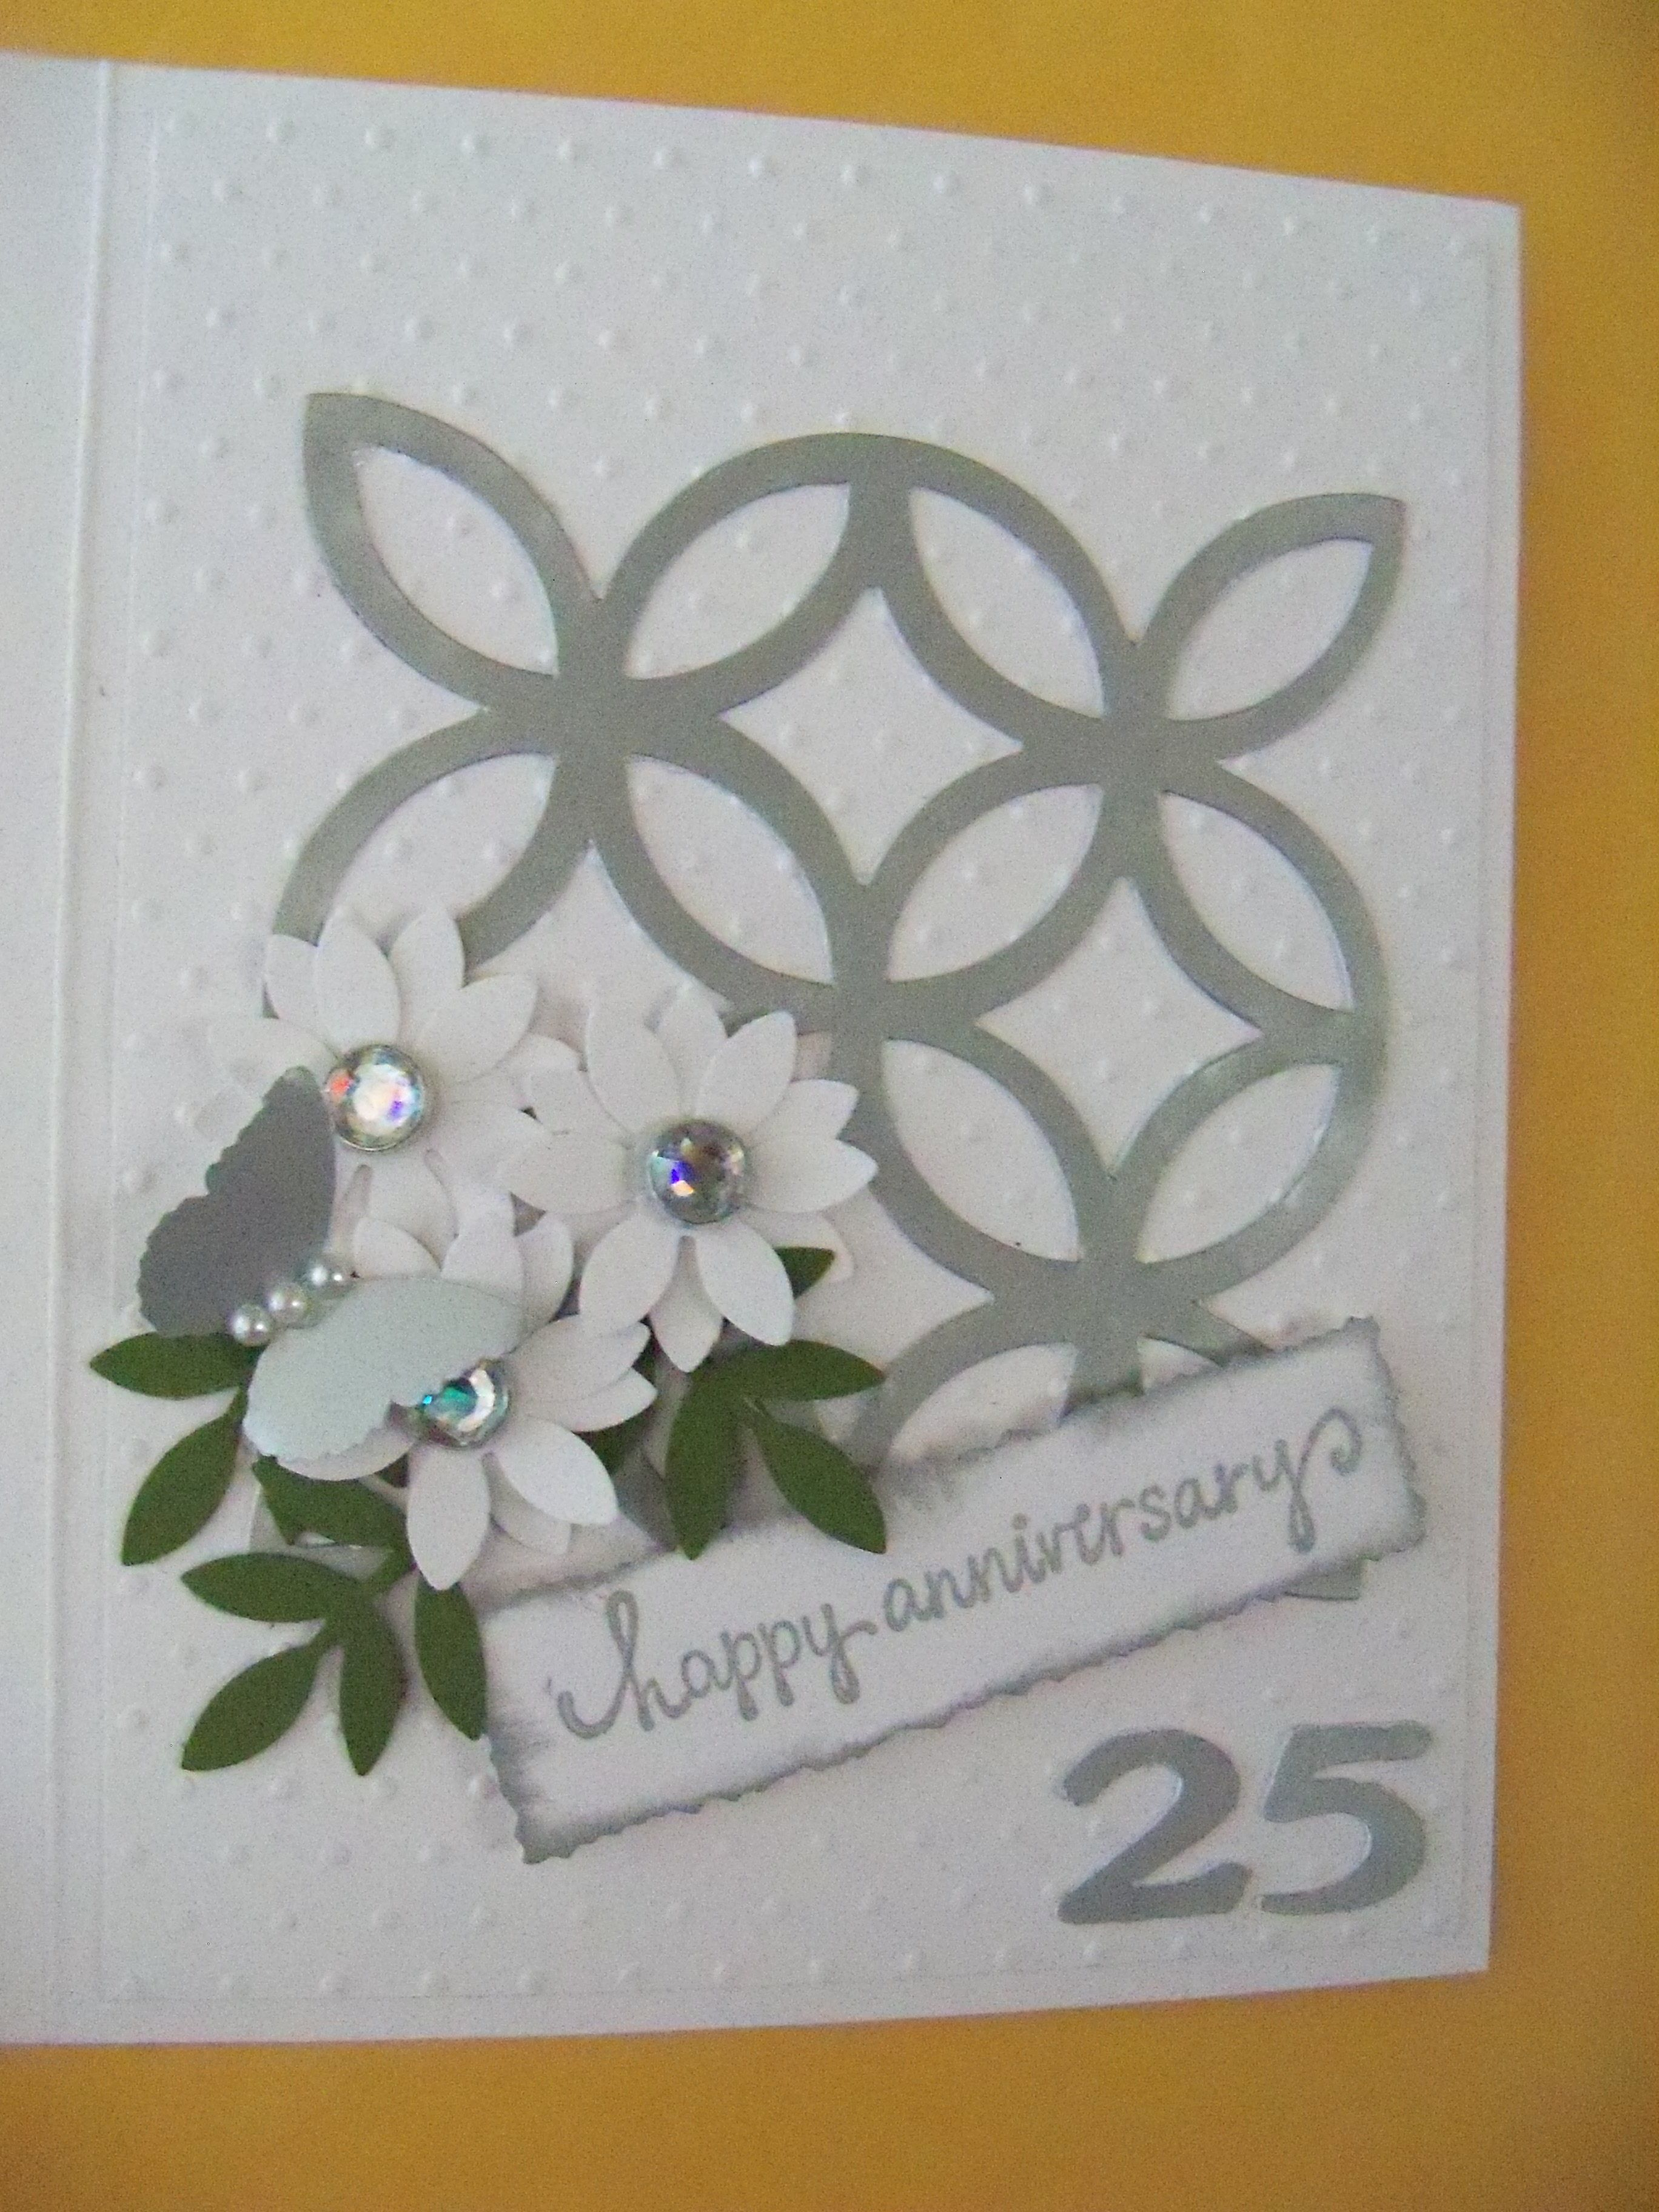 Pin By Barbara Mccuen On Cards Made By Me Wedding Anniversary Cards Embossed Cards Cards Handmade